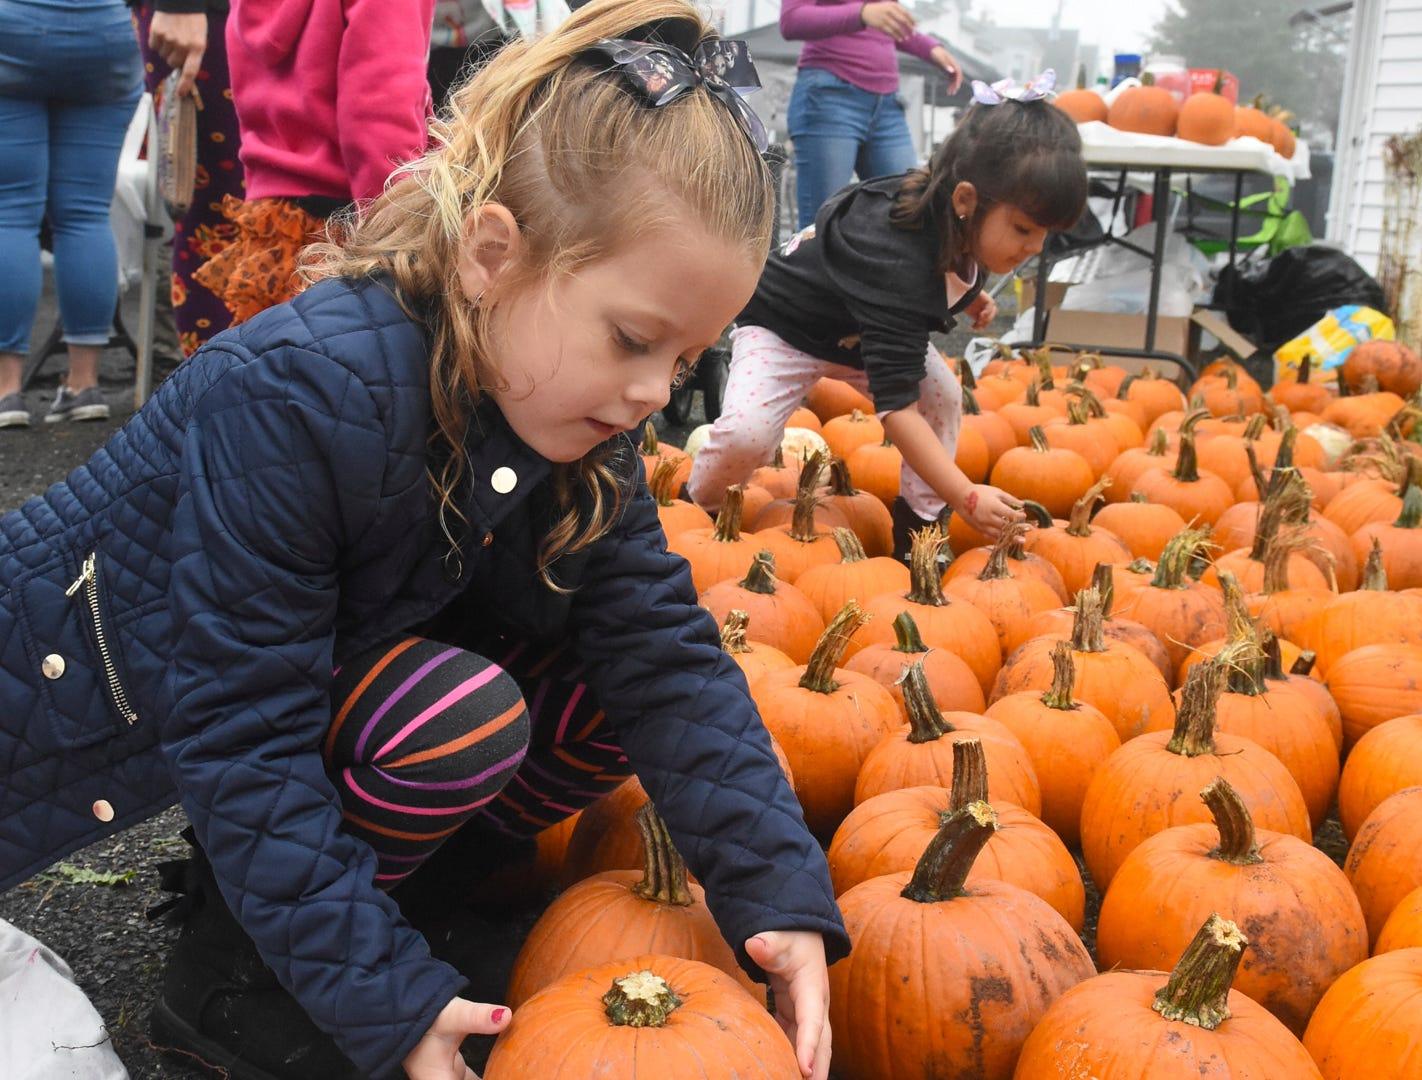 Ruby Gross, of Shenandoah, Pa., picks out her pumpkin during the annual Frackville Pumpkin Festival in Frackville, Pa., Saturday, Oct. 6, 2018. (Jacqueline Dormer/Republican-Herald via AP) ORG XMIT: PAPOE603